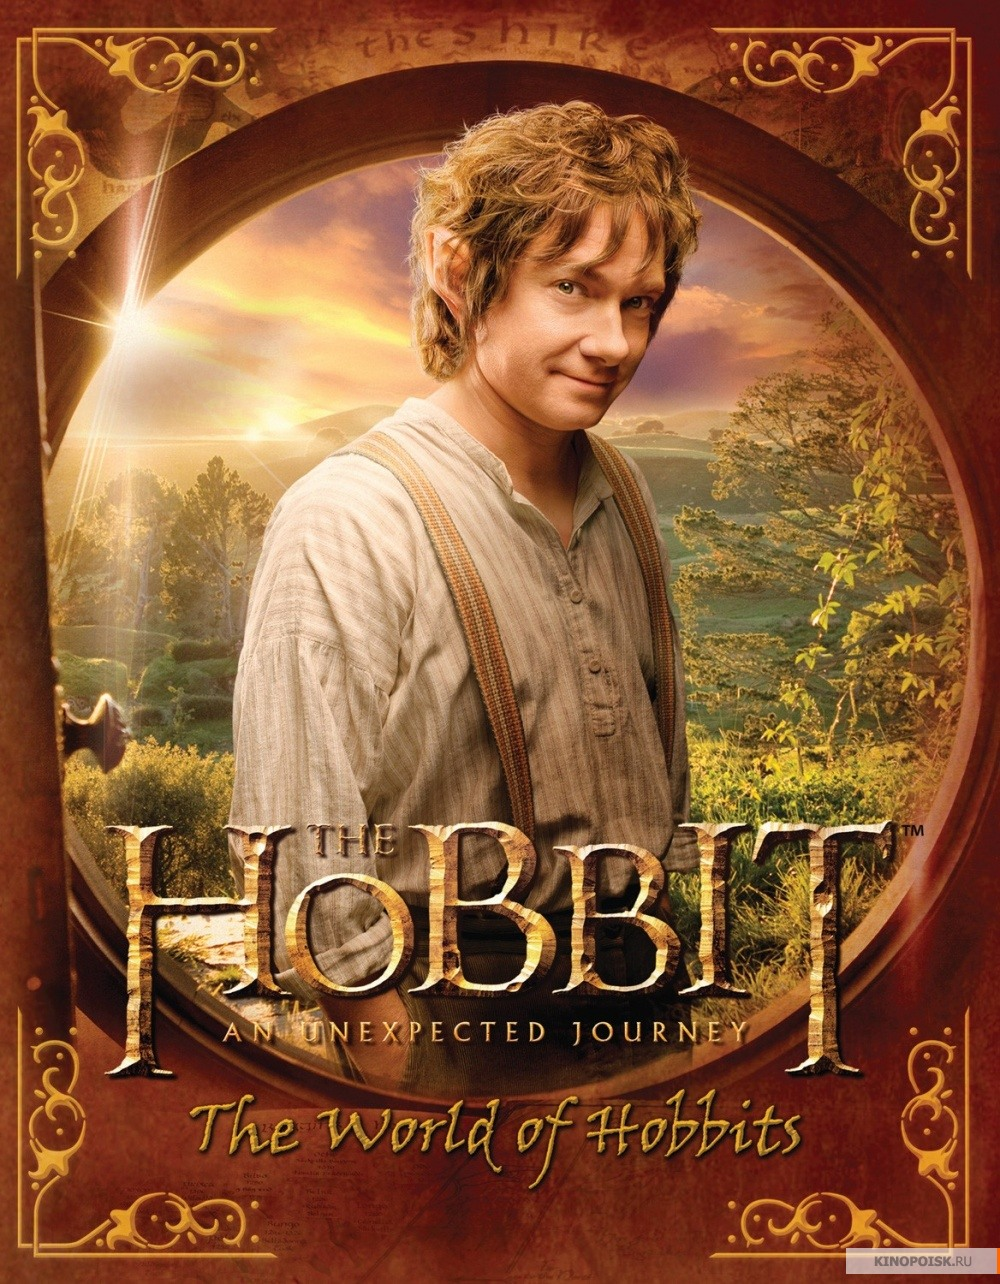 kinopoisk.ru-Hobbit_3A-An-Unexpected-Journey_2C-The-1961608.jpg